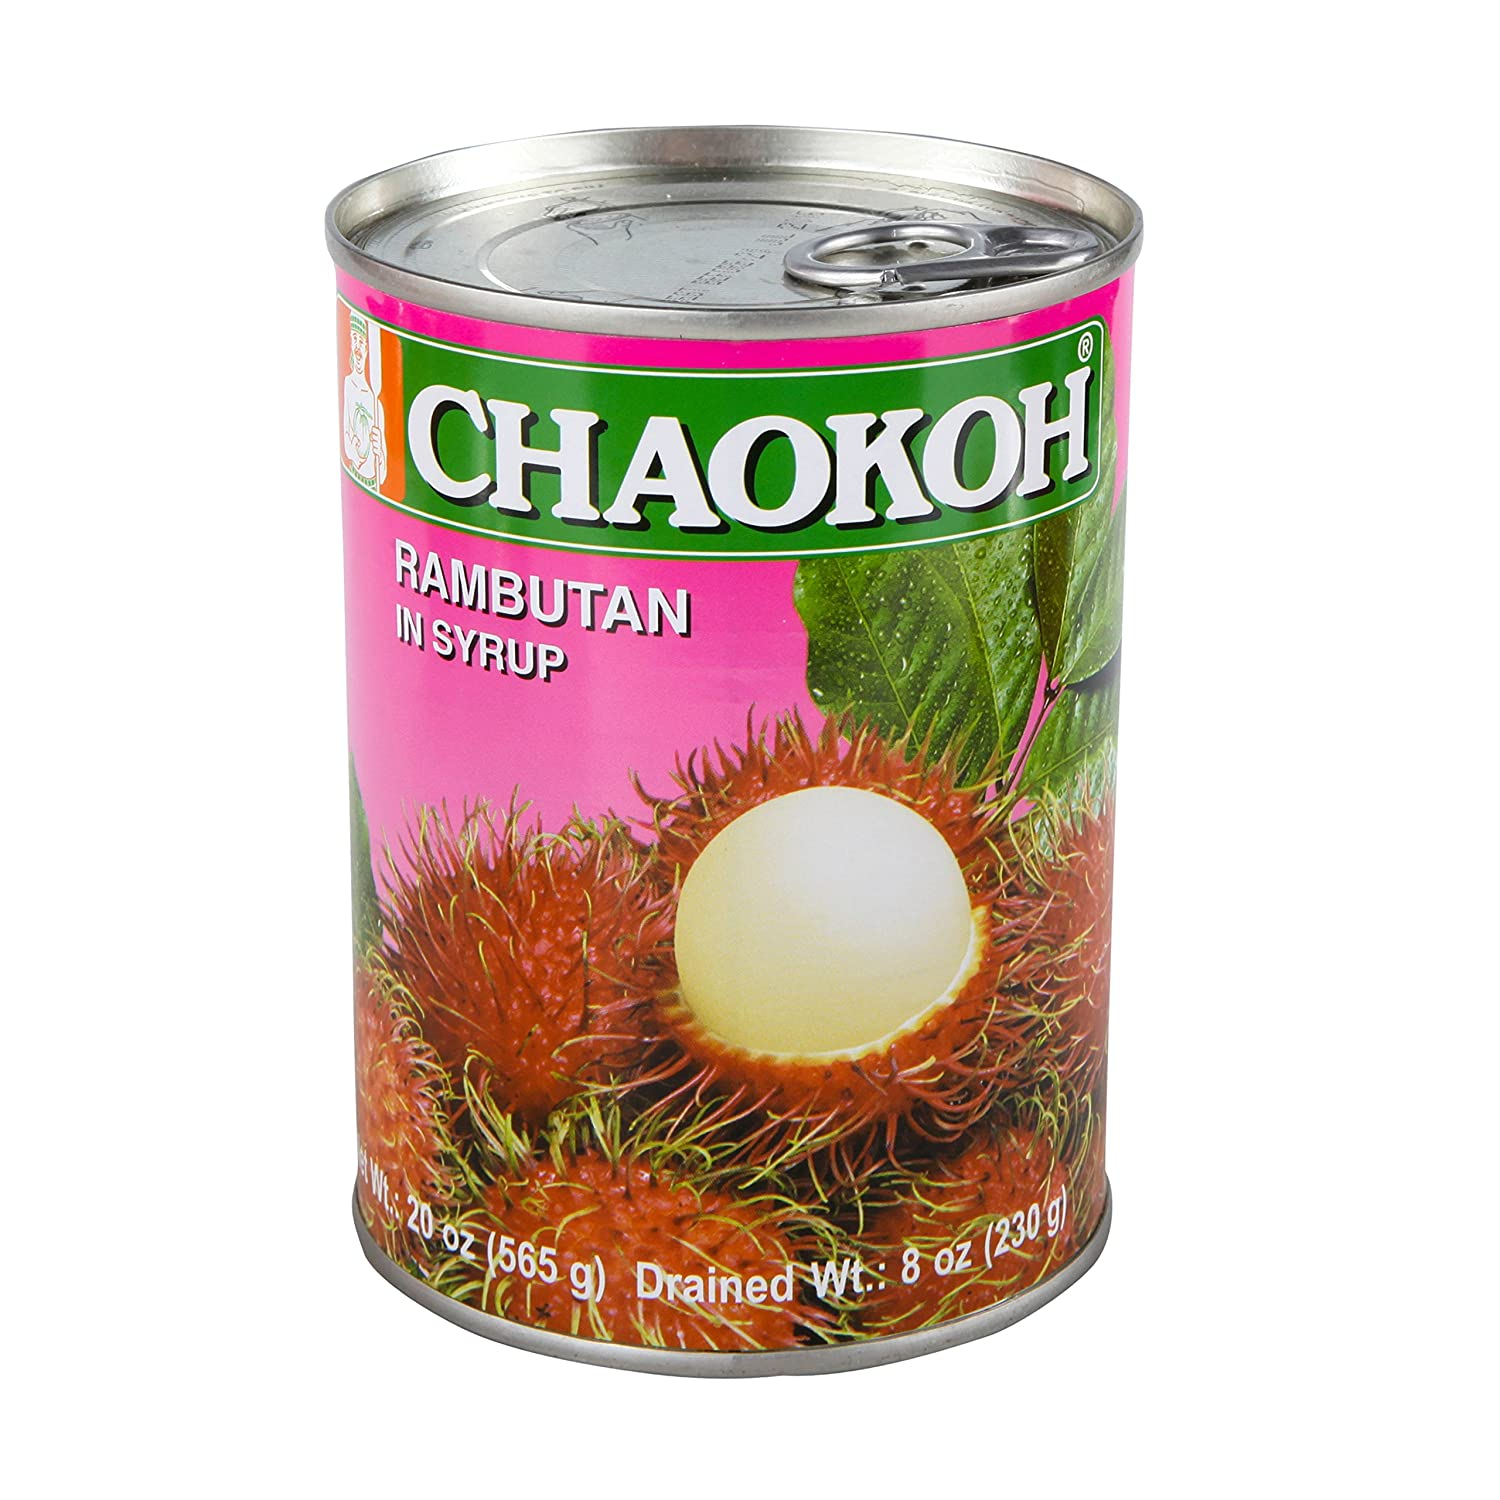 Chaokoh Same day shipping Rambutan Award-winning store in Syrup 20 Pack of24 Ounce